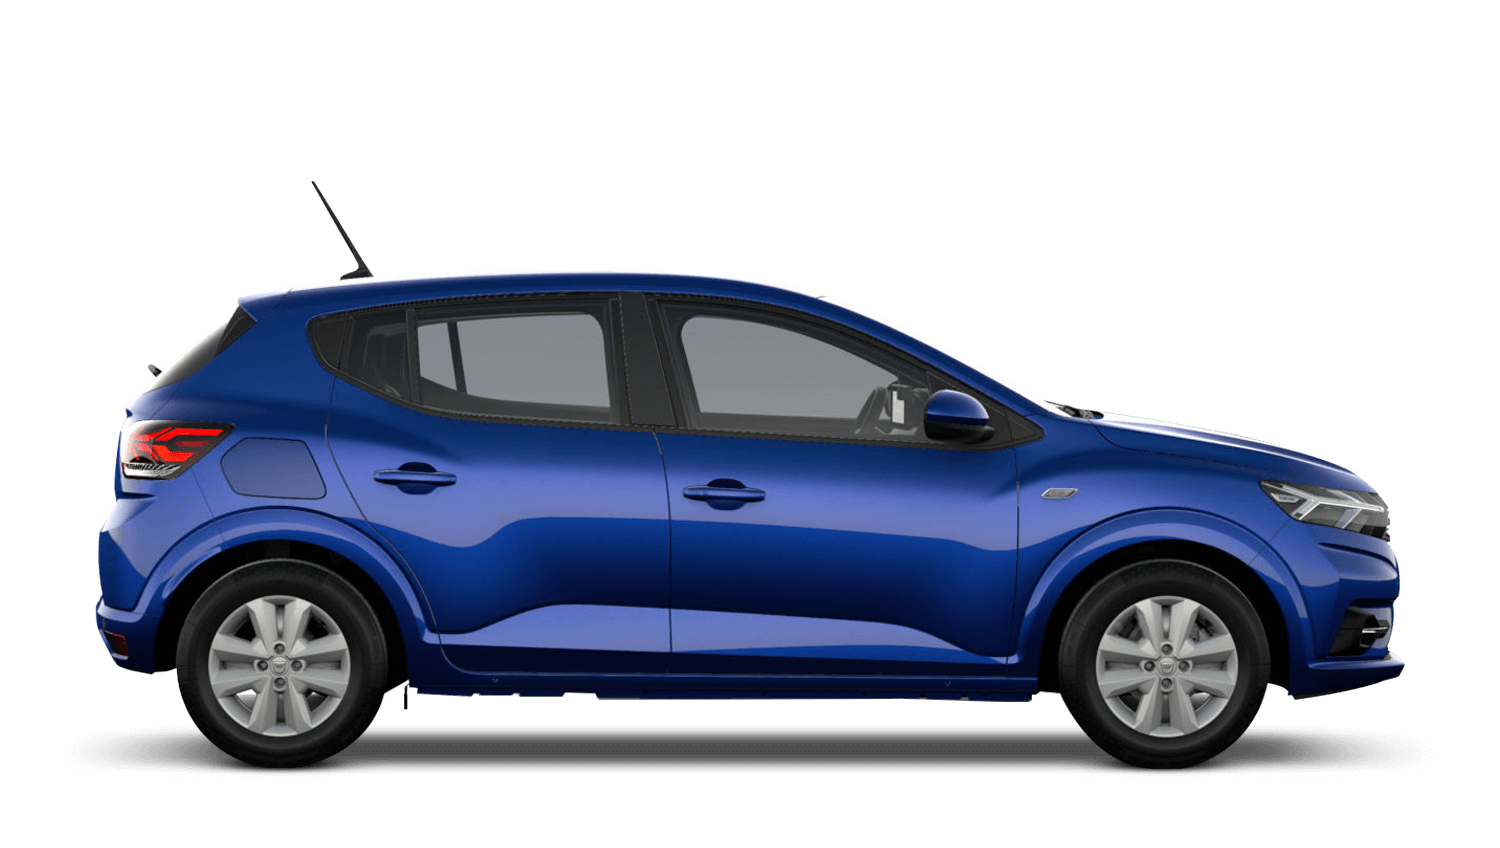 All-New Sandero Leasing Offers